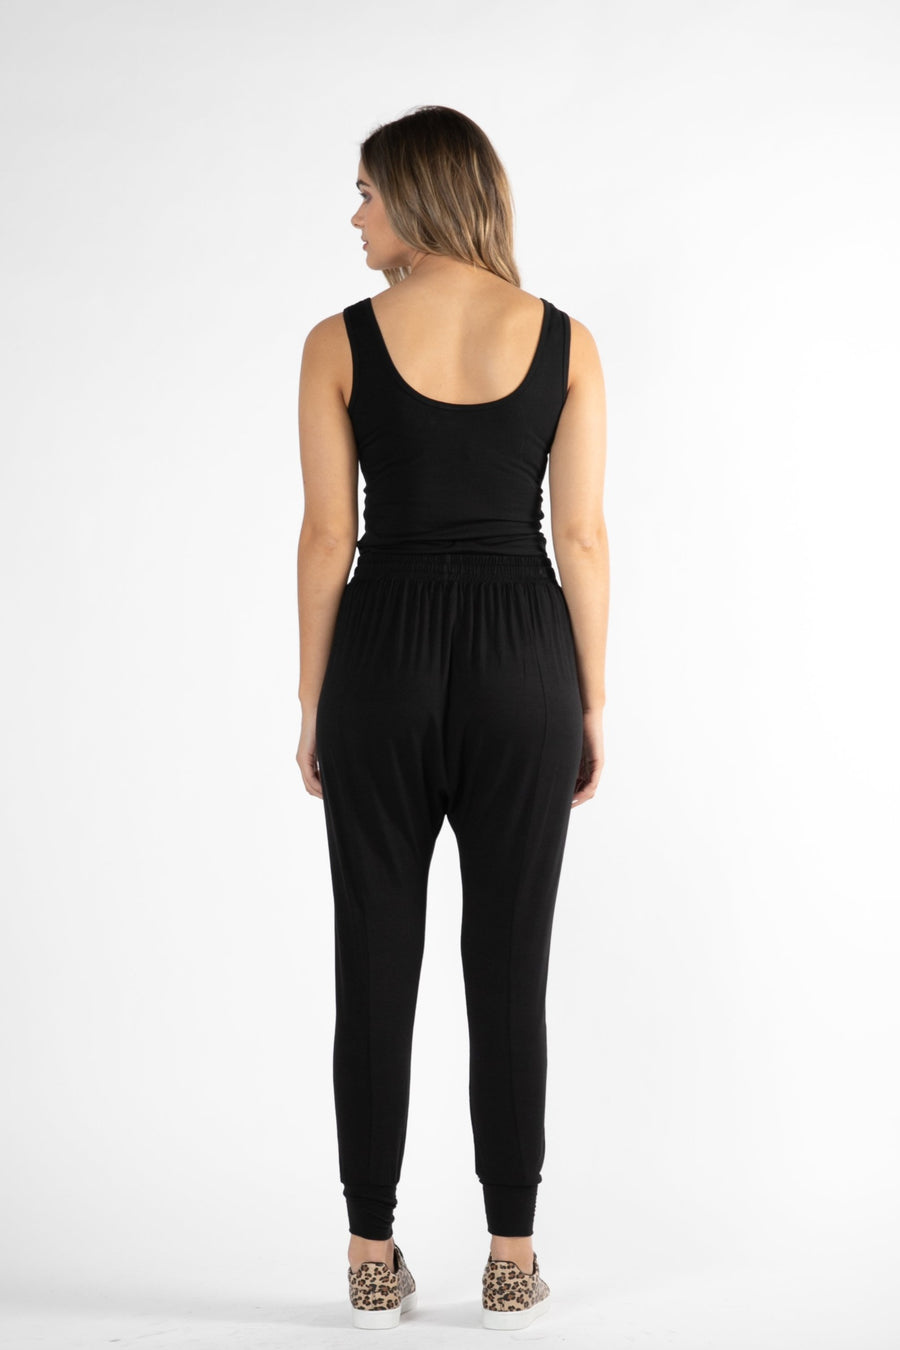 Barcelona Pants Black Women | Lyn Rose Boutique